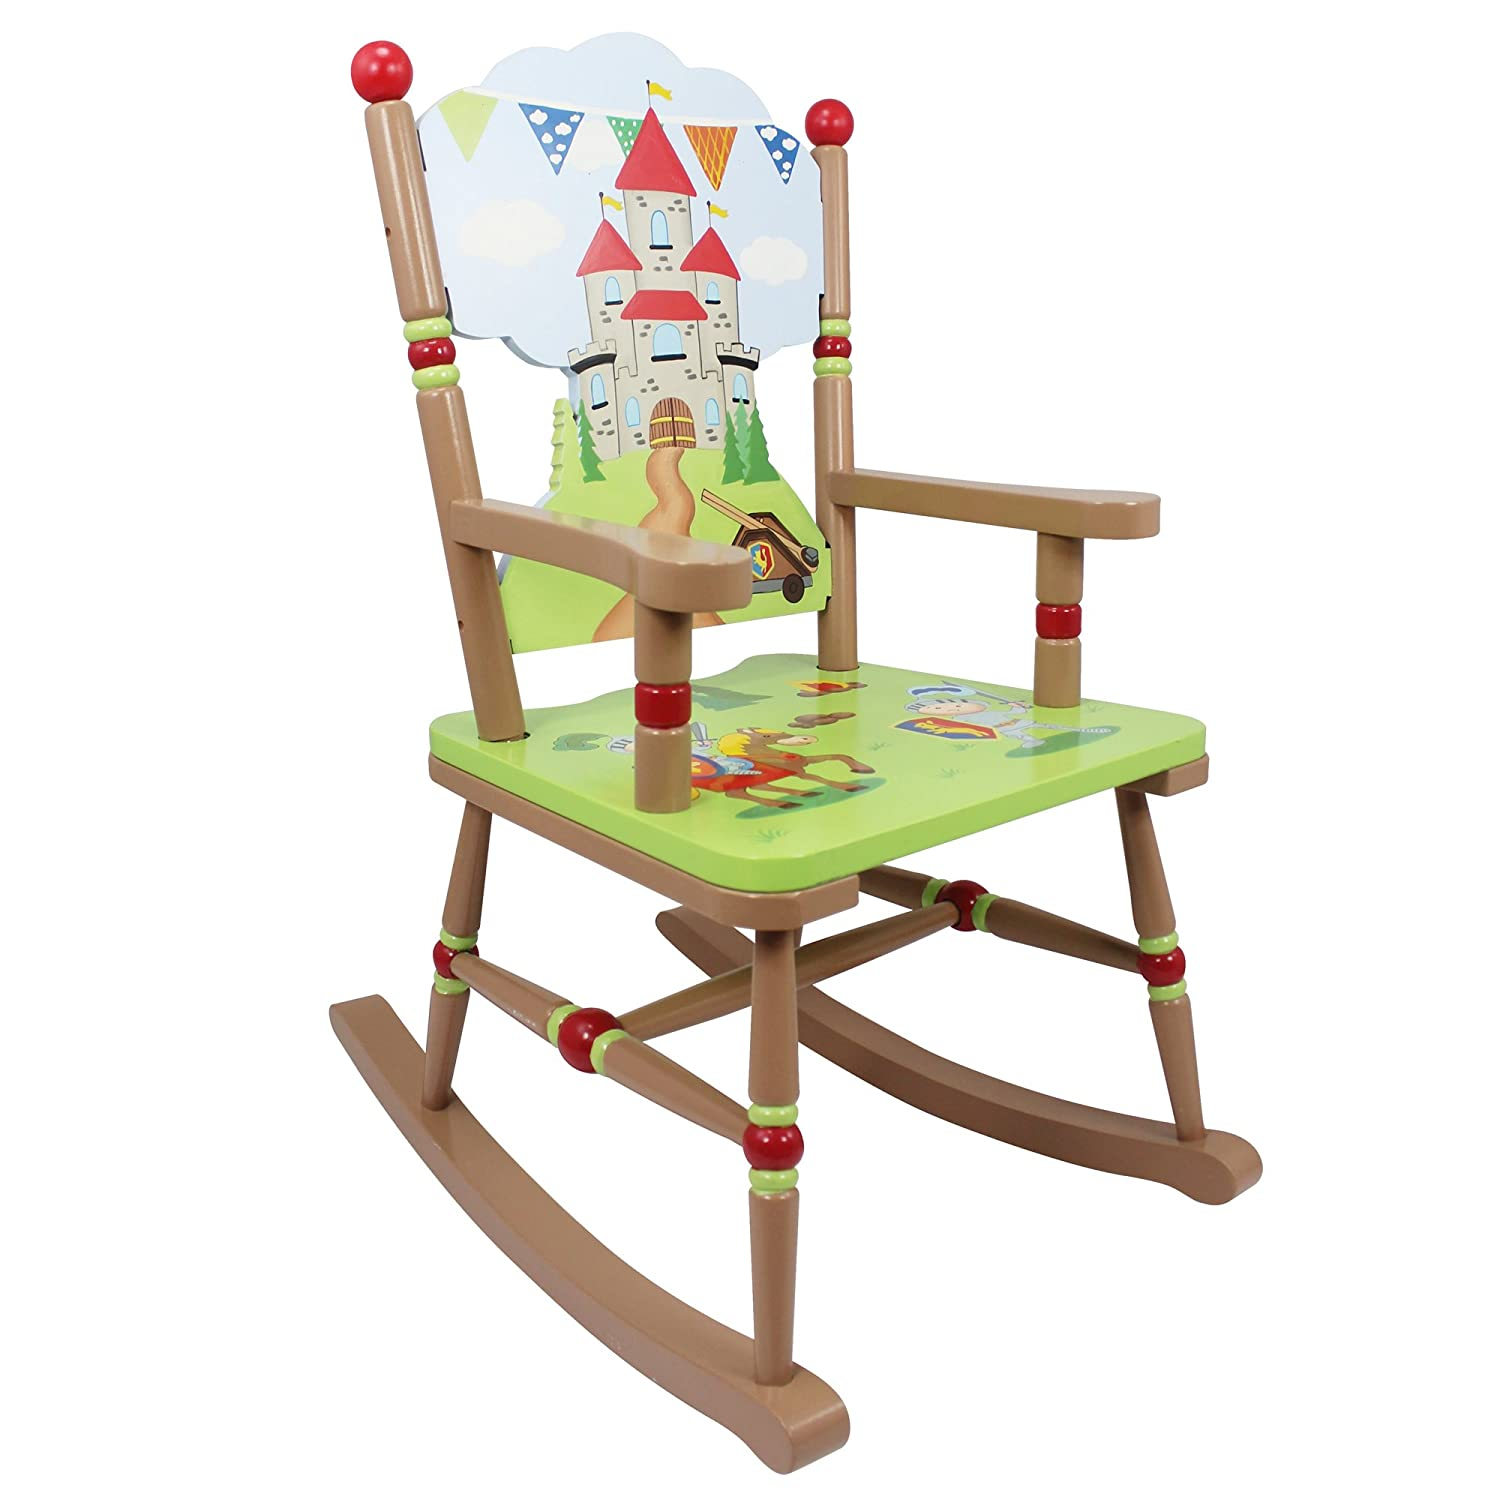 Fantasy Fields - Knights & Dragon themed Kids Wooden Rocking Chair | Hand Crafted & Hand Painted Details | Child Friendly Water-based Paint Teamson TD-11832A